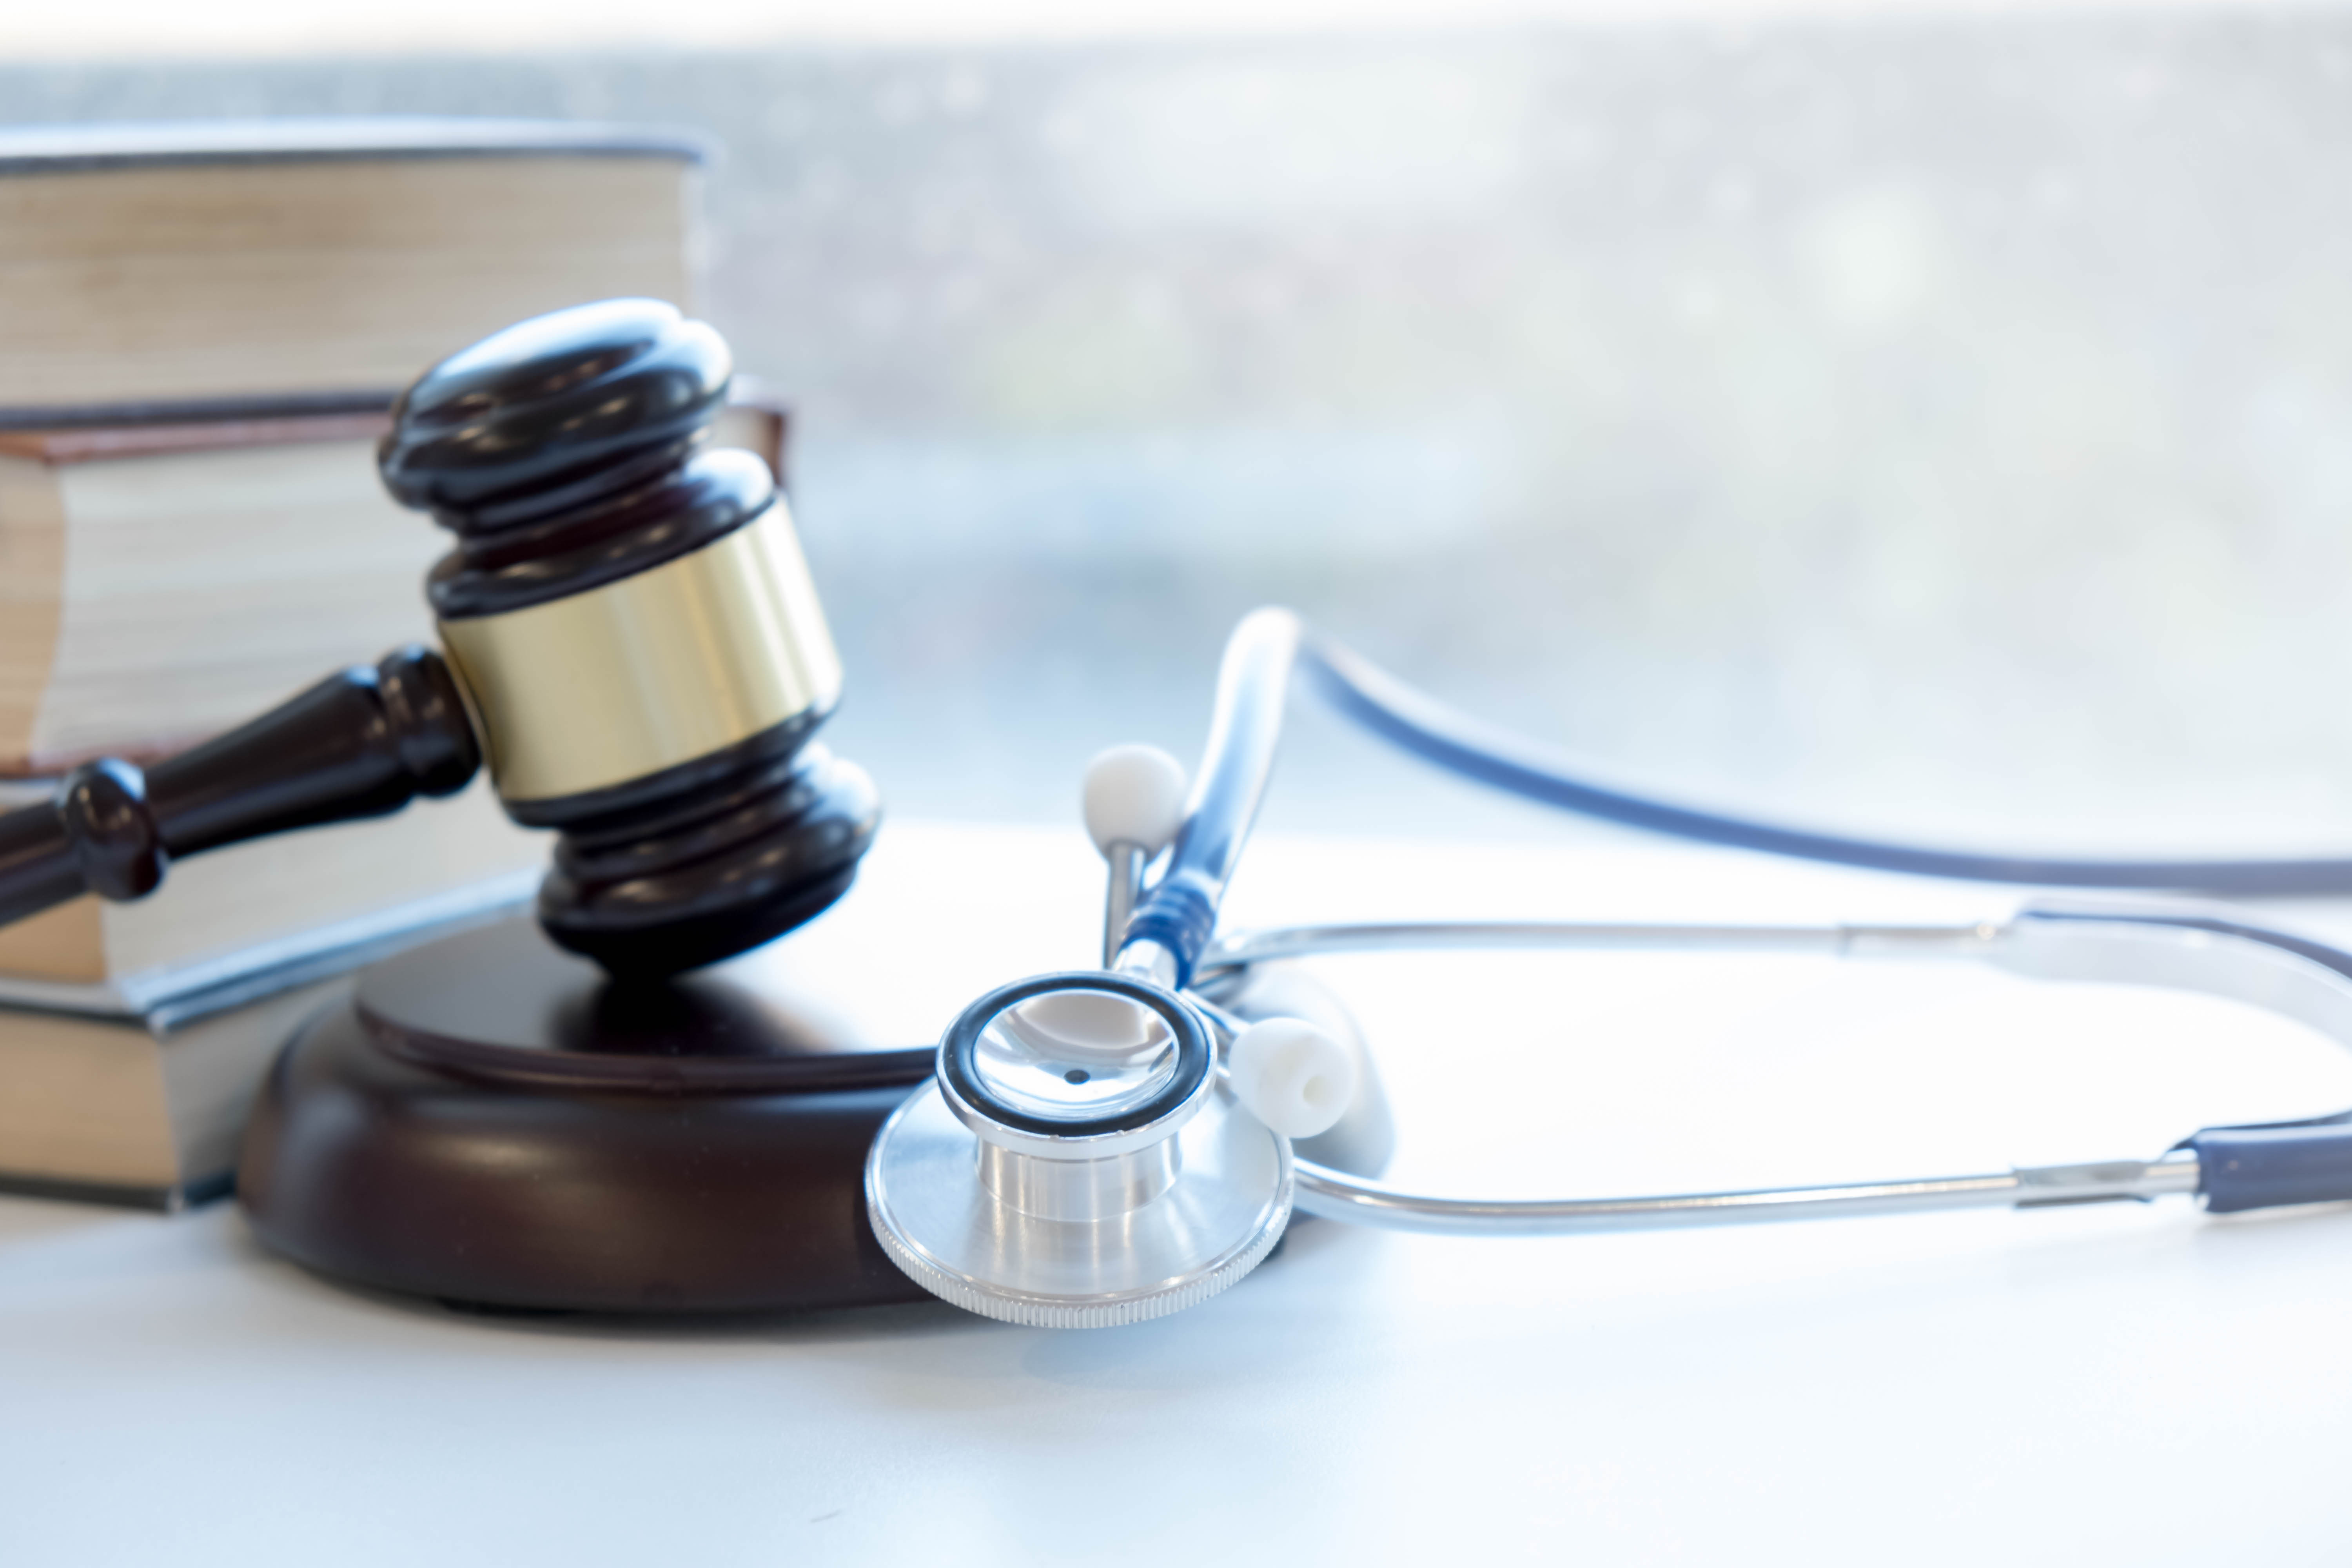 Gavel and stethoscope and a stack of books